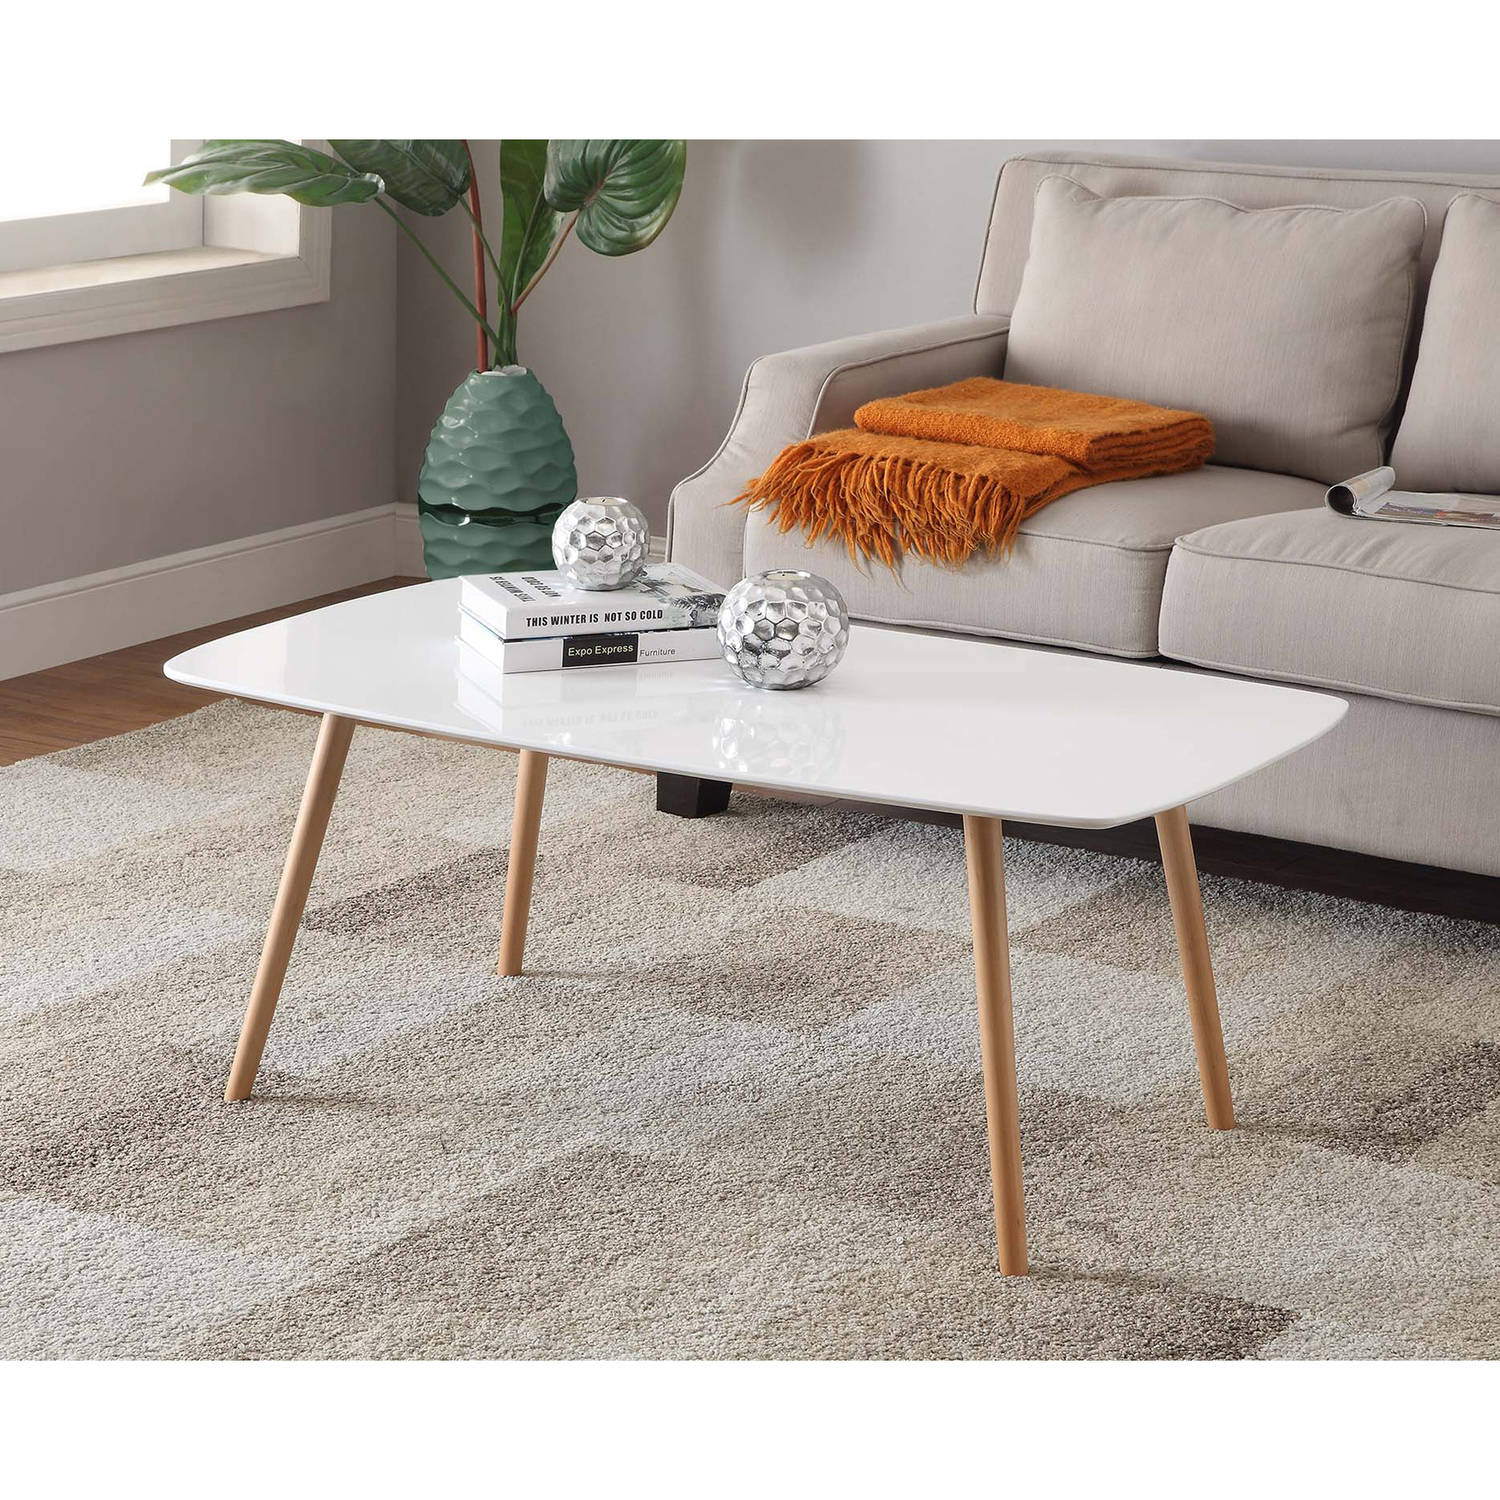 Convenience Concepts No Tools Oslo Coffee Table Multiple Colors intended for sizing 1500 X 1500